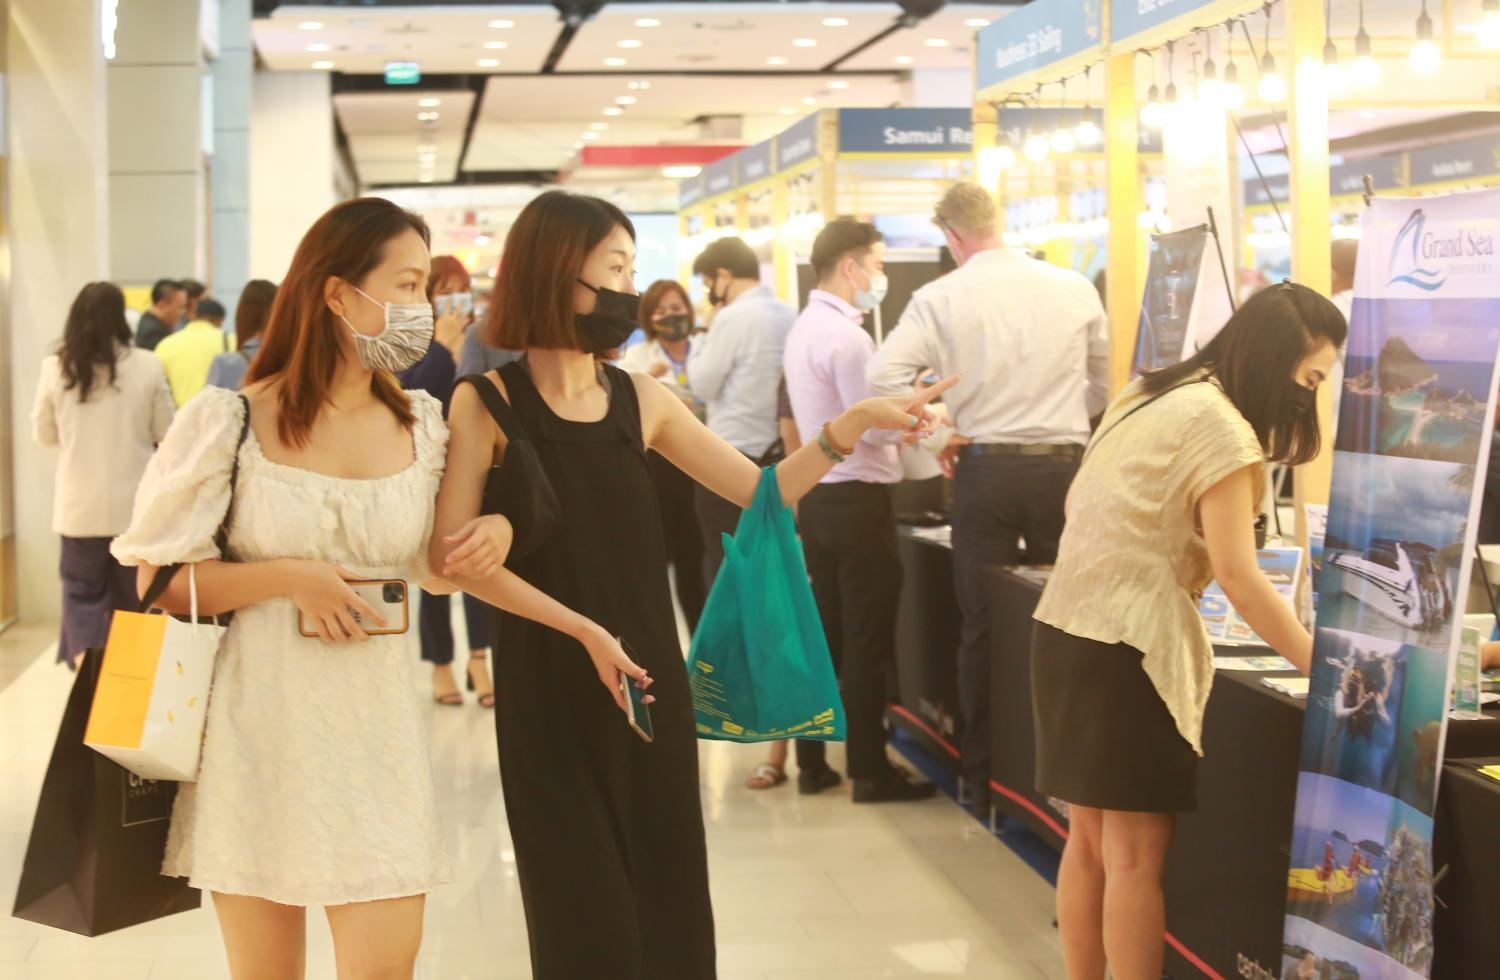 Visitors browse travel deals offered at the 'Wonder Islands Samui, Phangan, Tao' event, which runs from March 11-17 at CentralWorld.